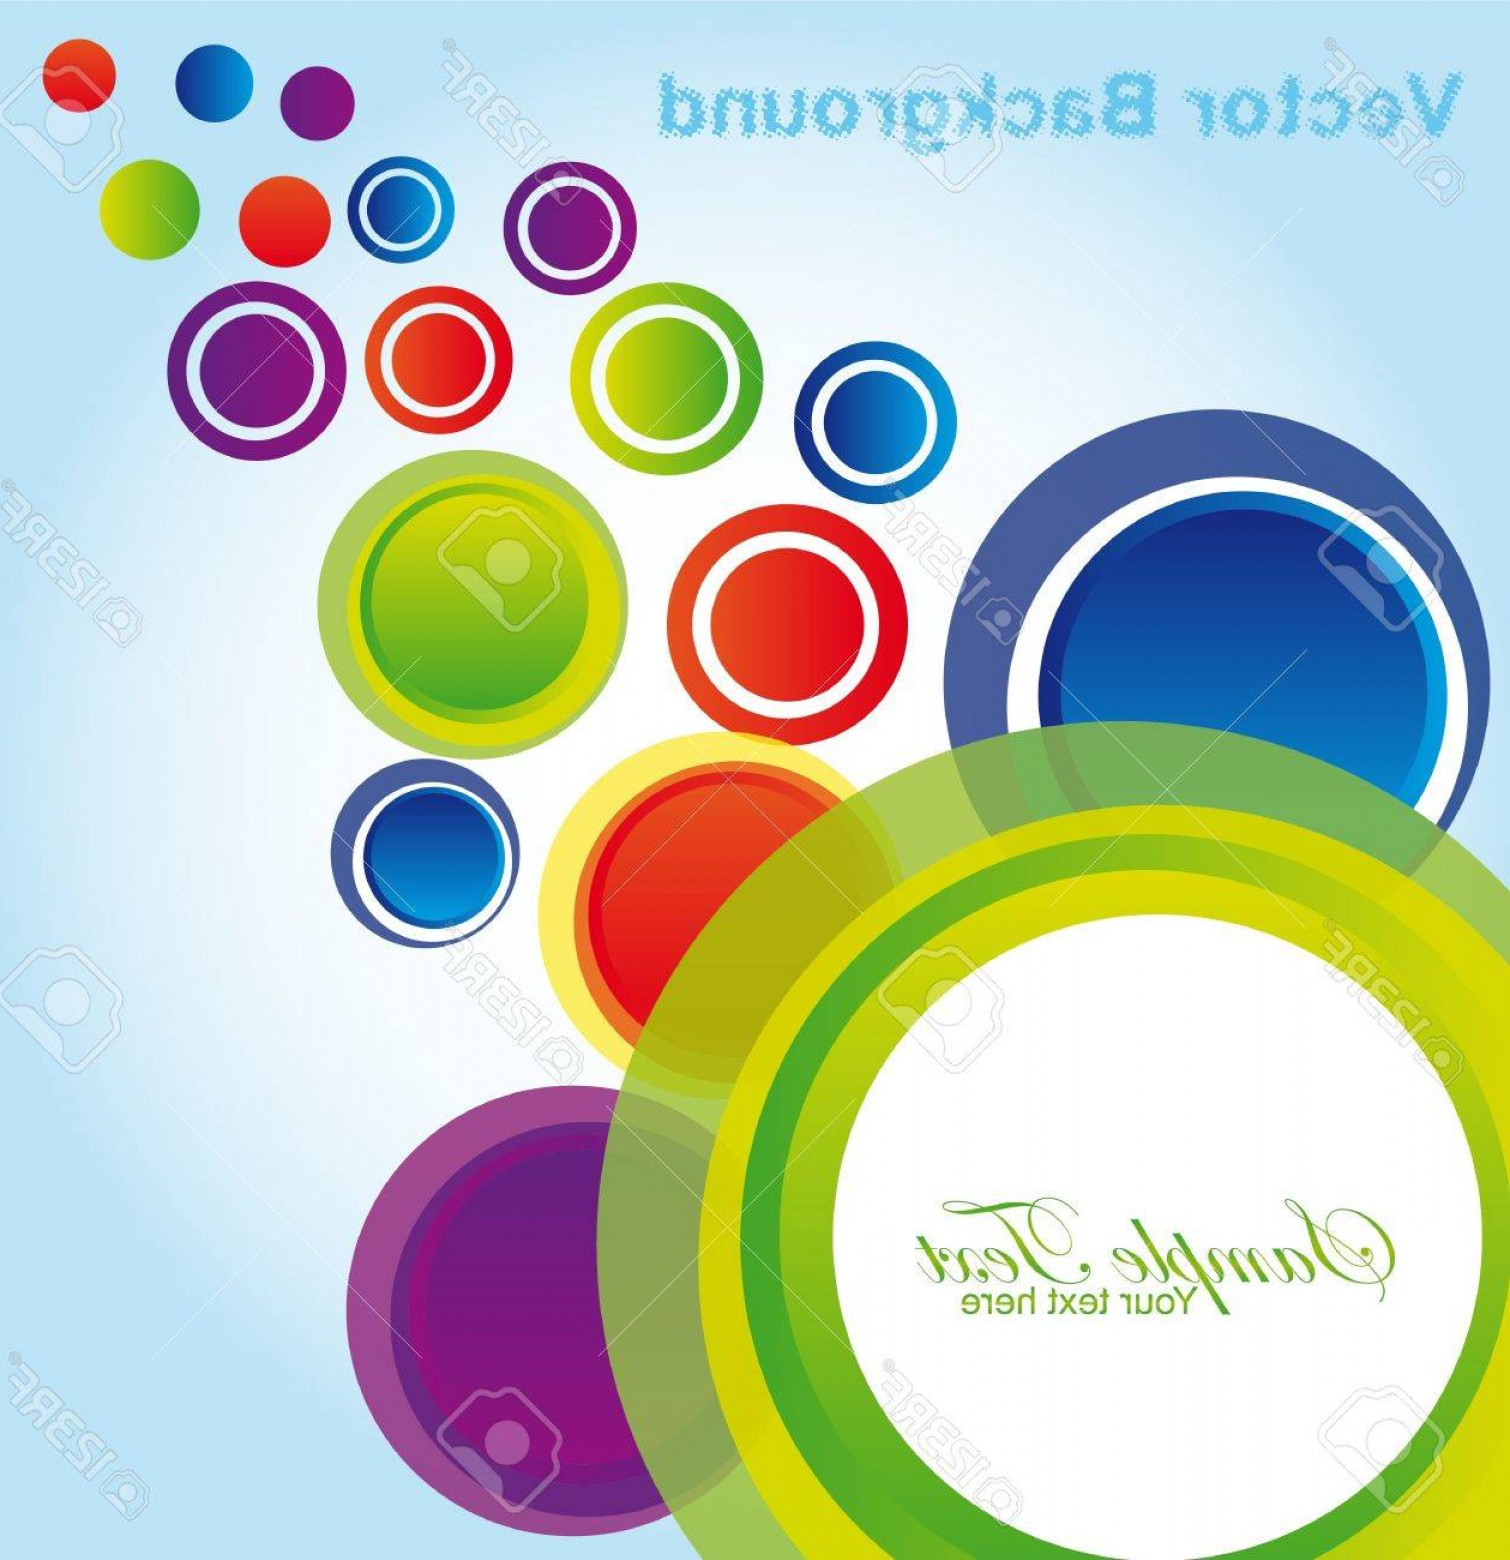 Blue And Orange Circle Vector: Photogreen Blue Violet Red Yellow Orange Circles Over Blue And White Background Vector